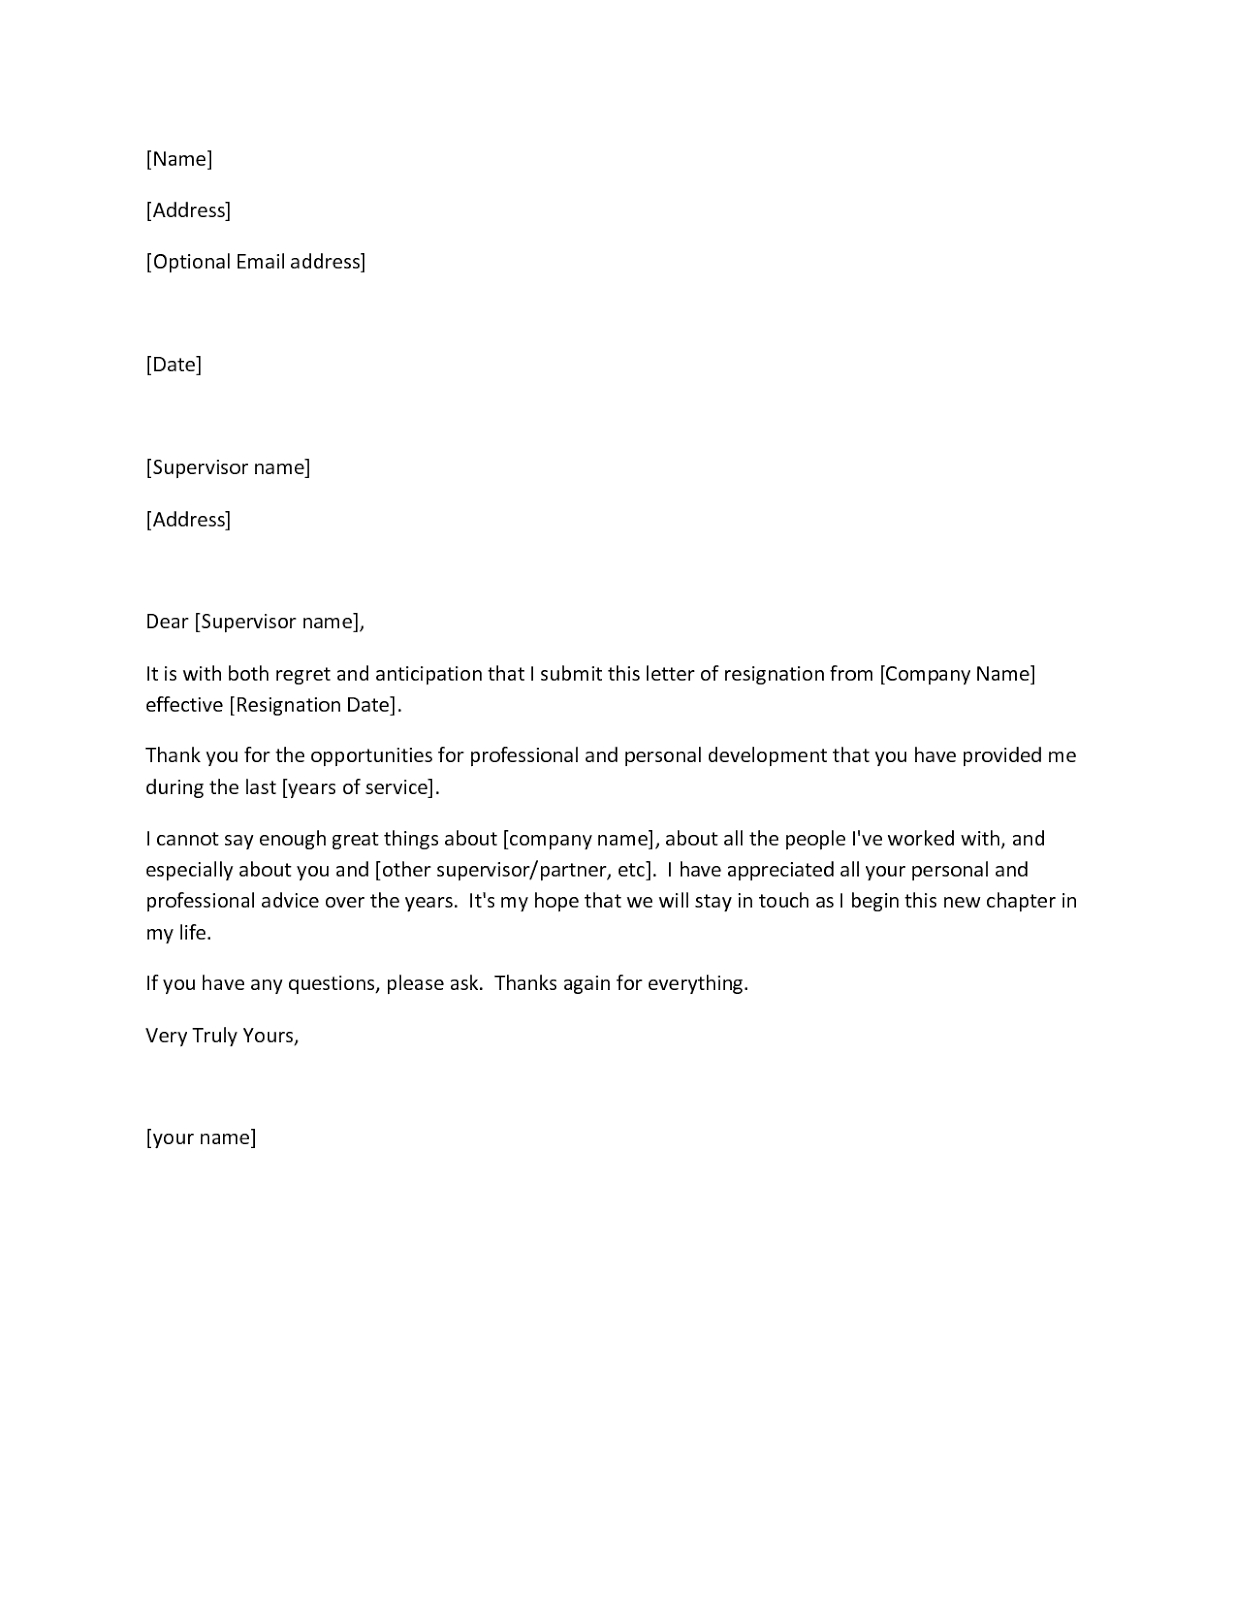 professional resignation letter uk resume and cover letter professional resignation letter uk resignation letters letter of resignation templates resignation letter example 80518536 resignation letter